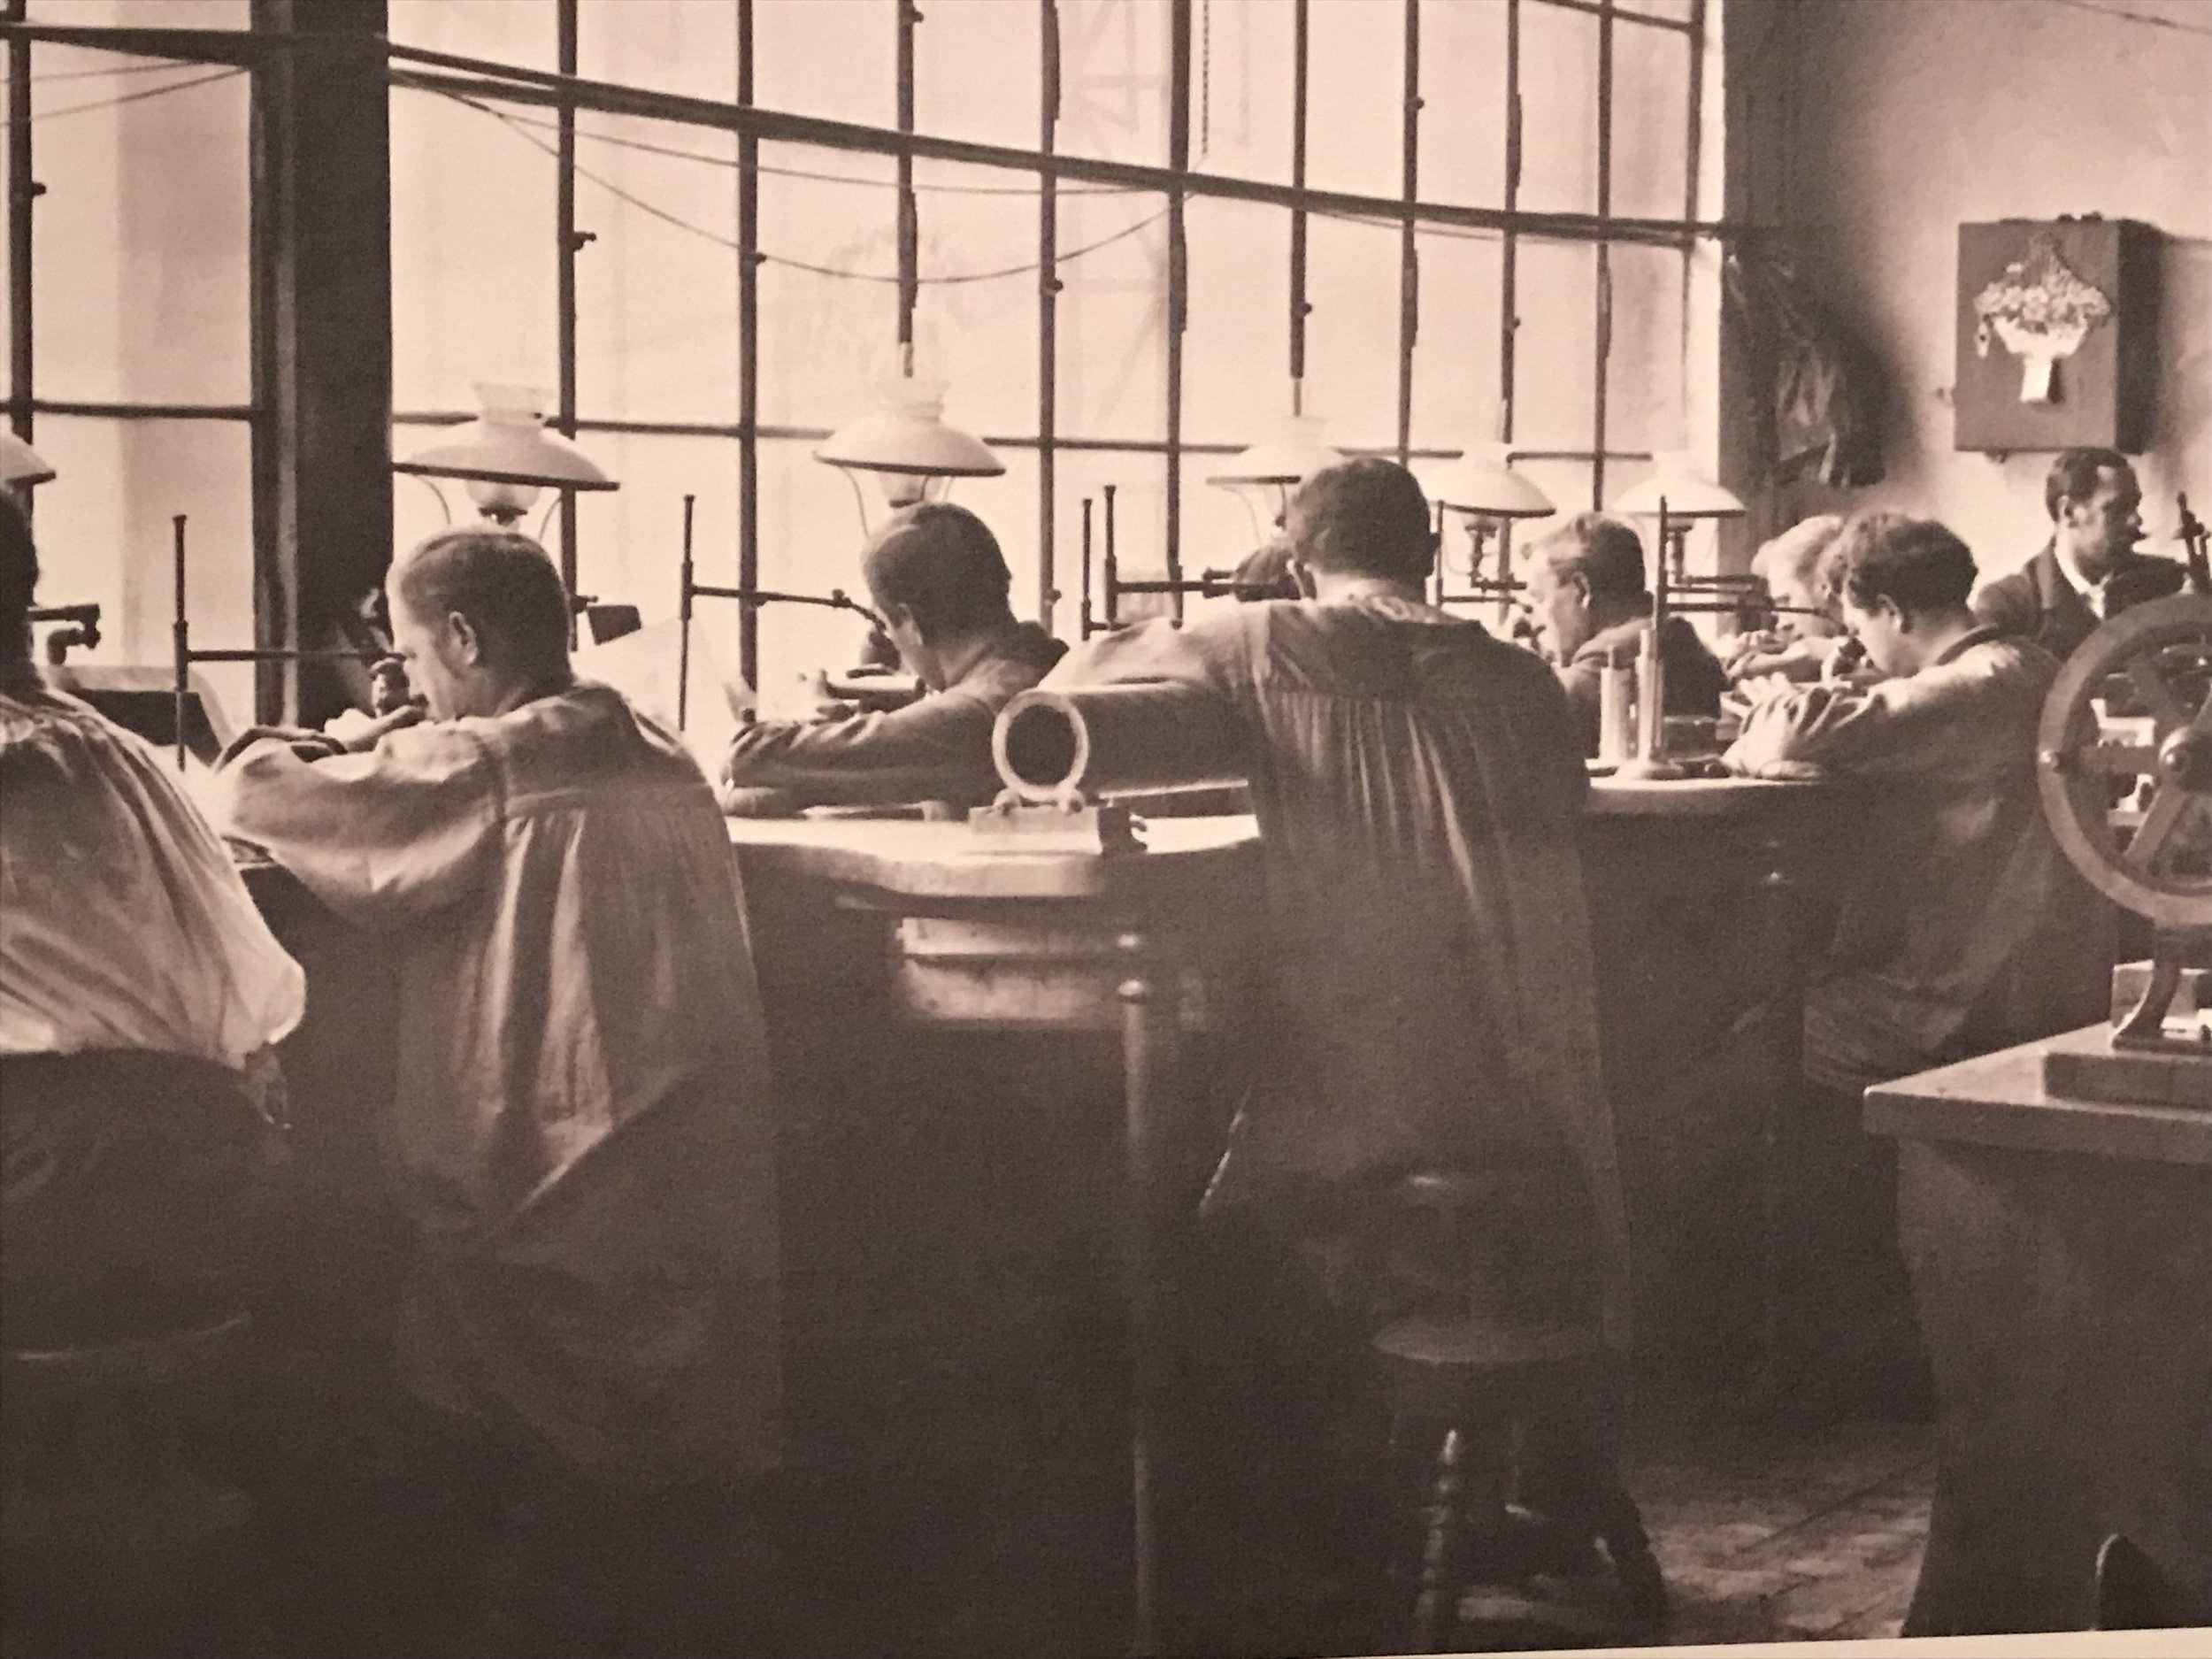 Back in the day the Goldberger Fabric Factory would make high quality fabric and ship it around the world.